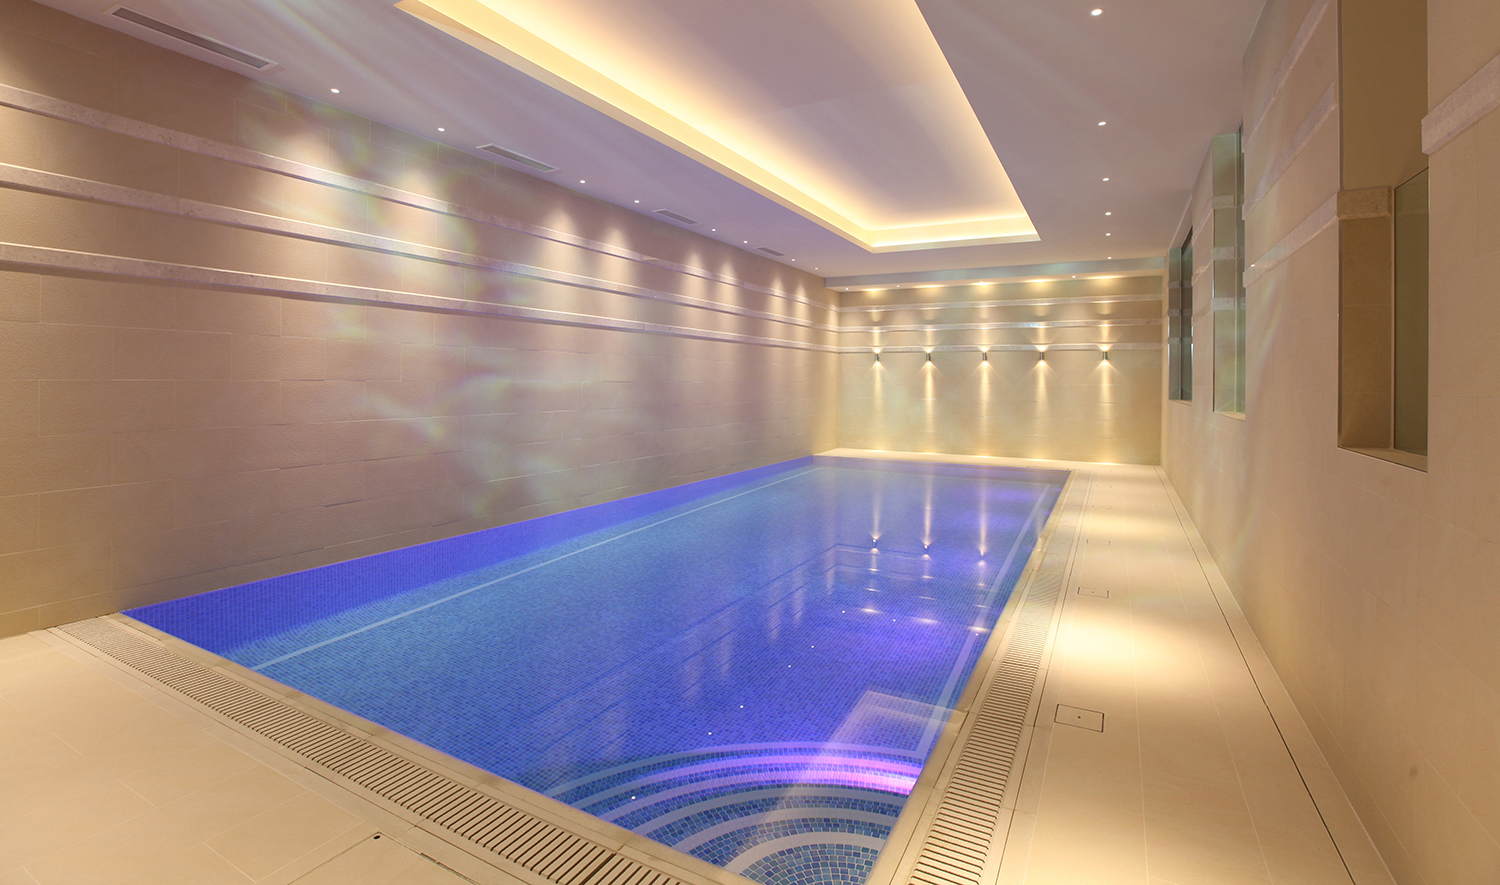 Atmospheric swimming pool lighting